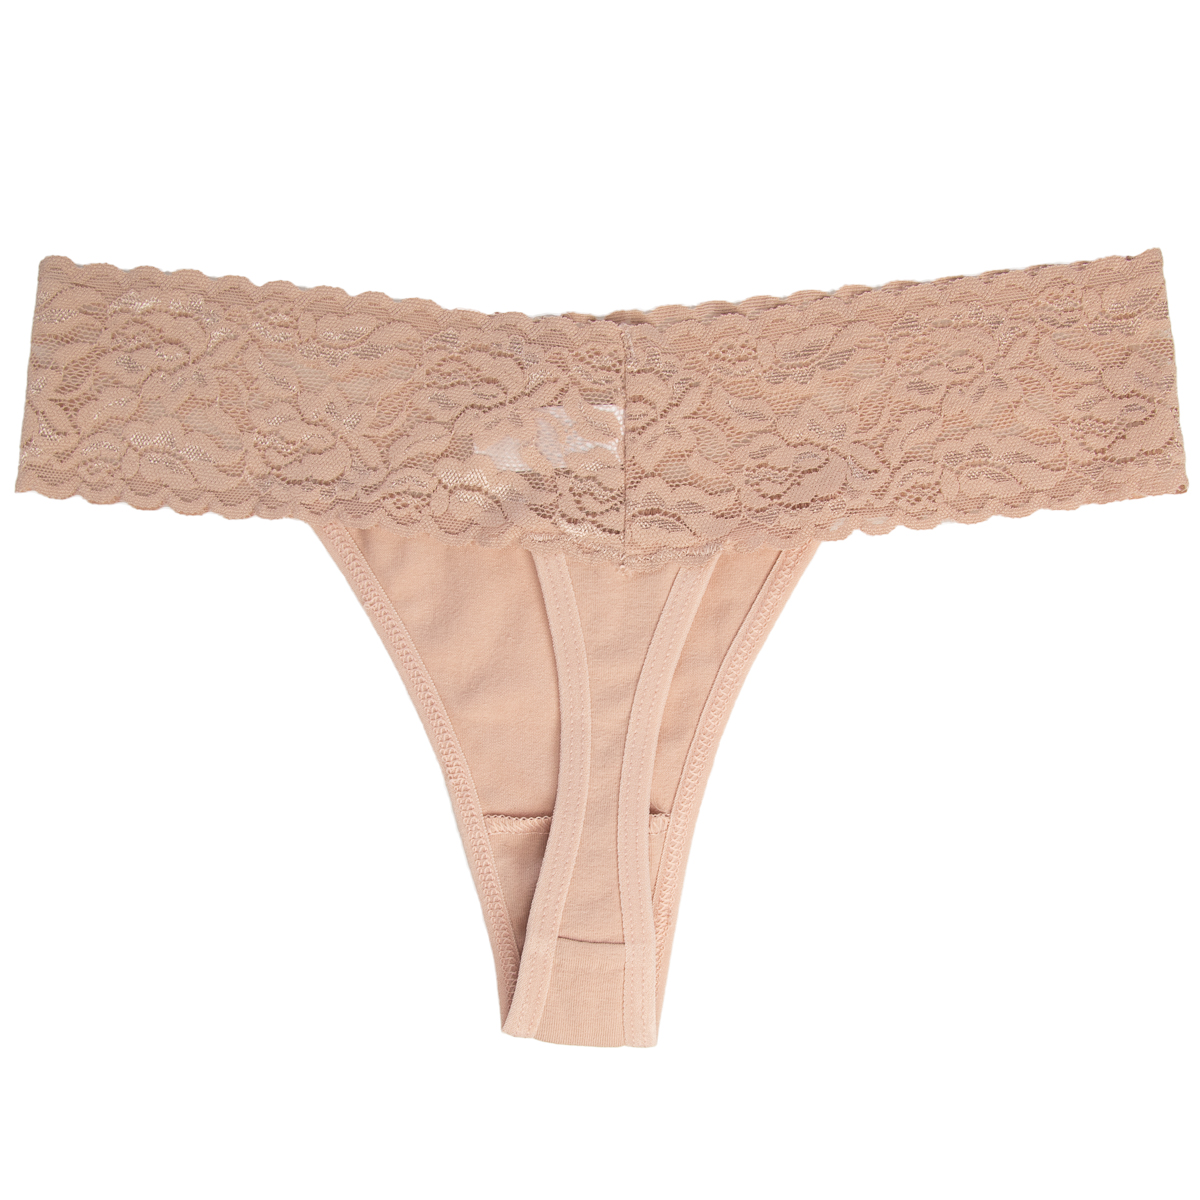 6-Pack-Cotton-Lace-Thong-Underwear-For-Women-Soft-Sexy-Lingerie-Panties-Thongs thumbnail 11